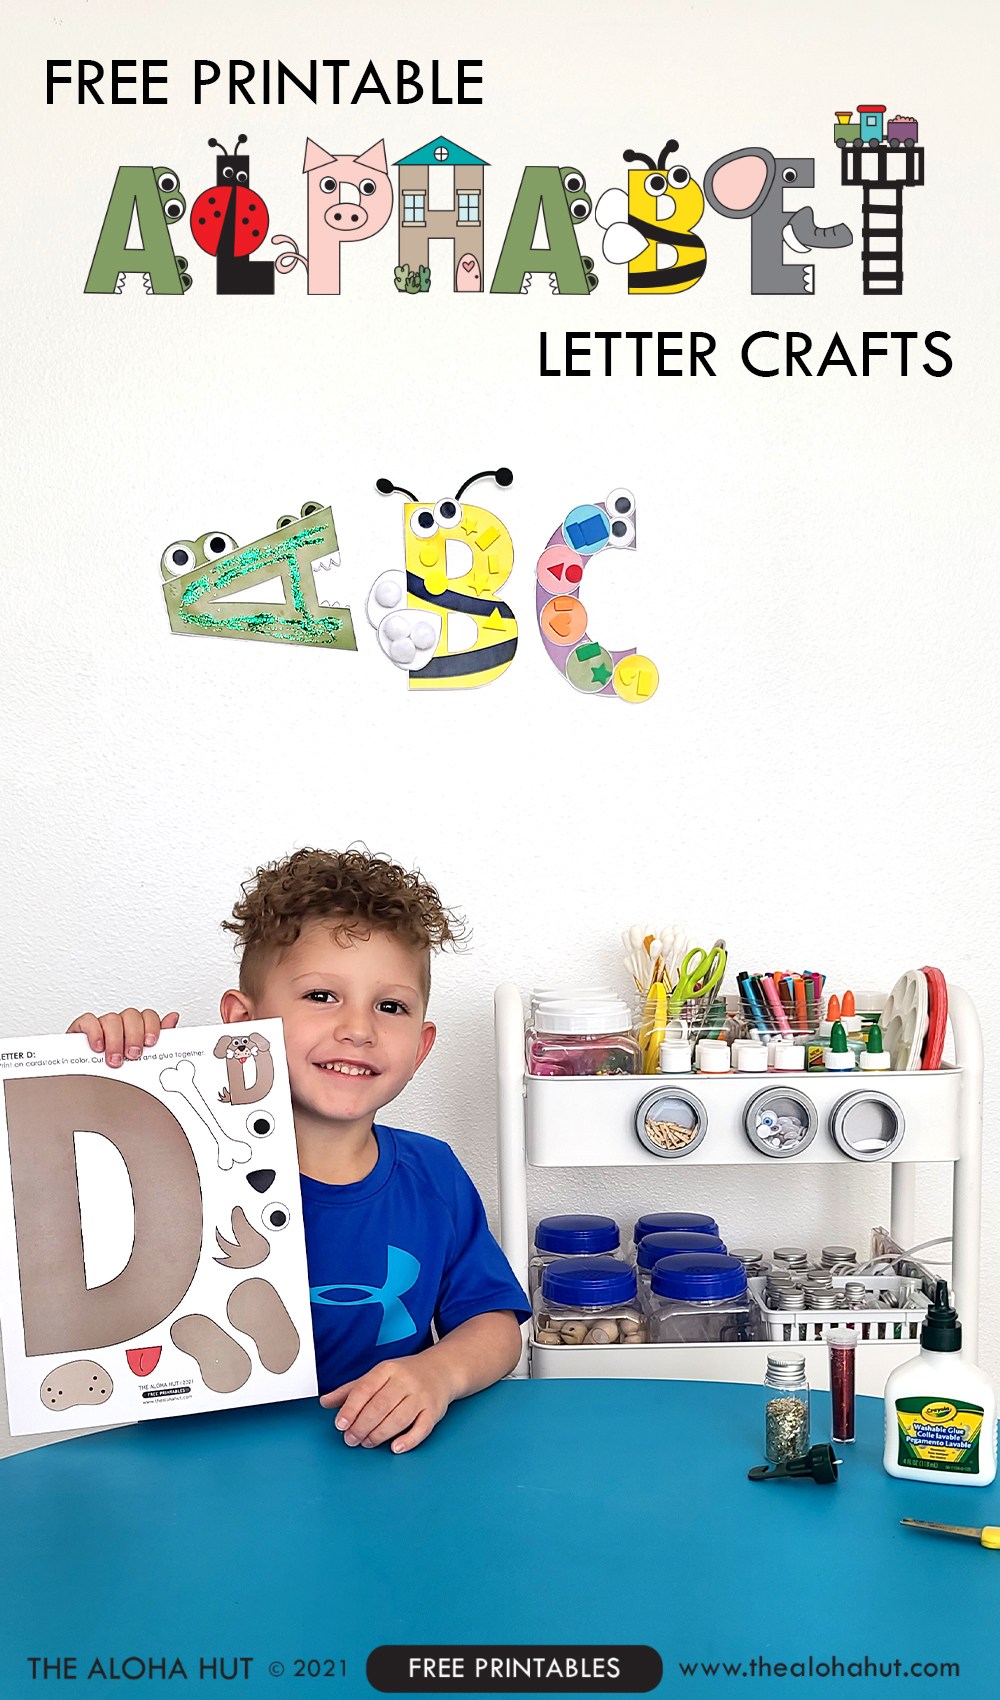 Alphabet Letter Crafts - Letter D - free printable by the Aloha Hut